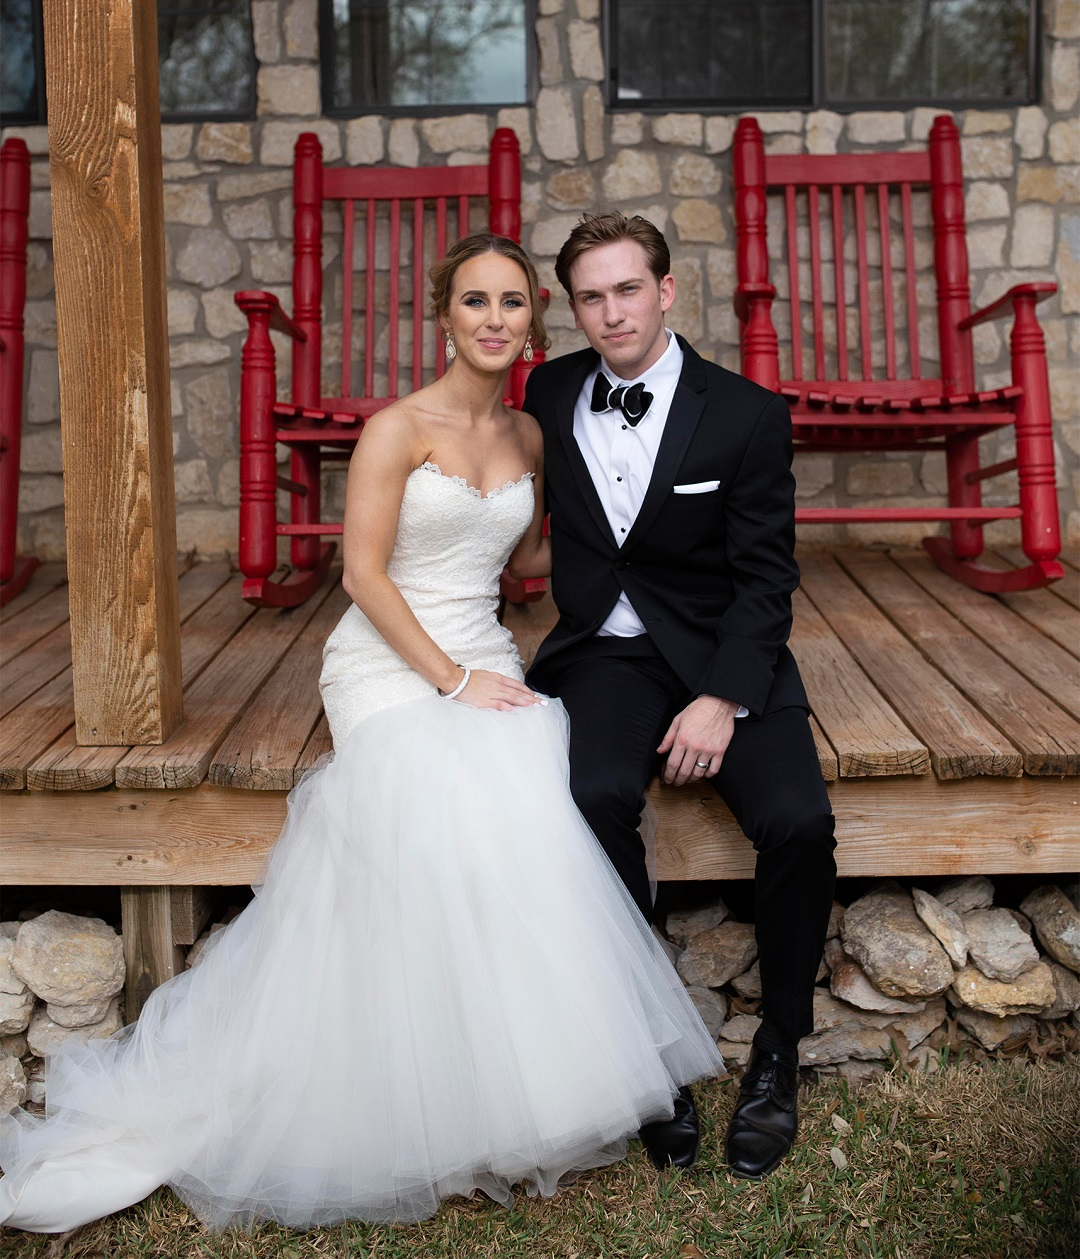 Married at First Sight's Danielle Bergman and Bobby Dodd 2